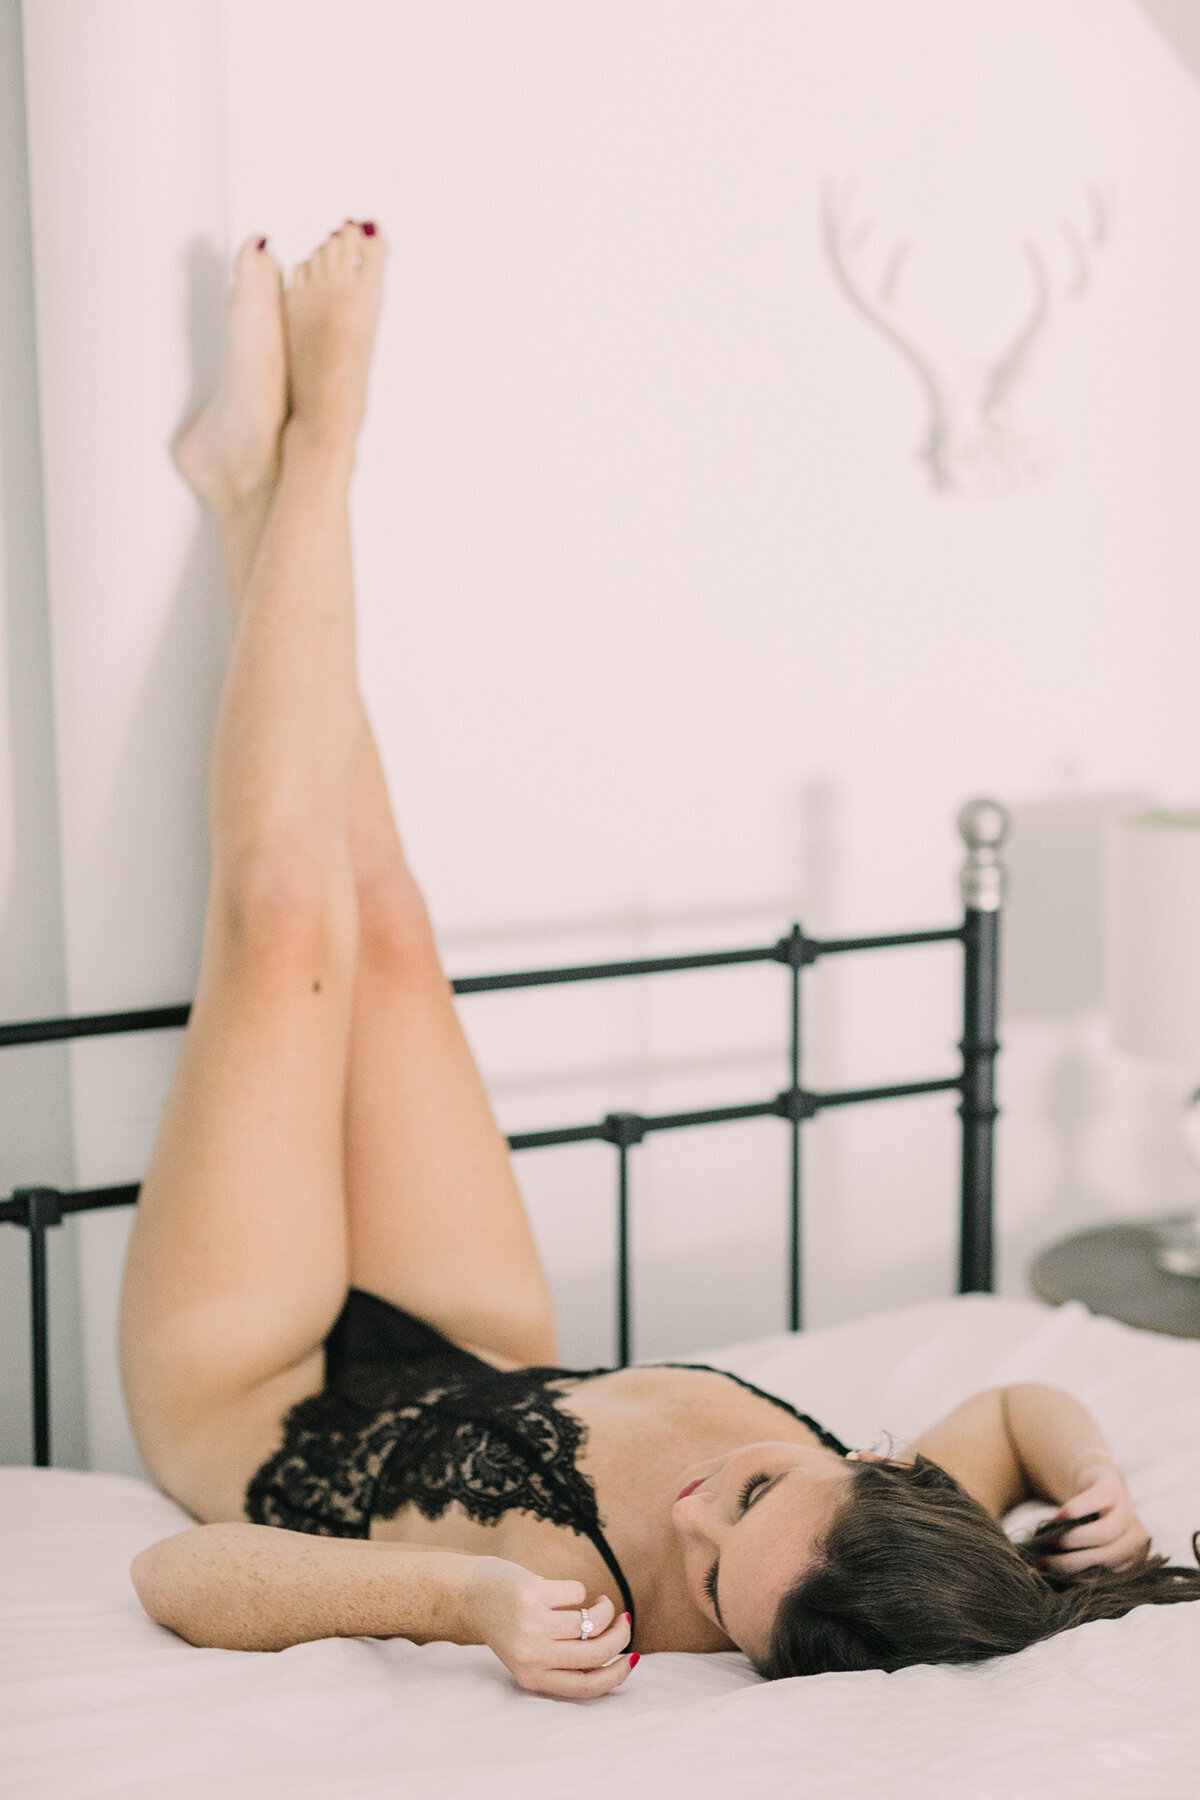 A woman lounging in bed while posing for a boudoir photo